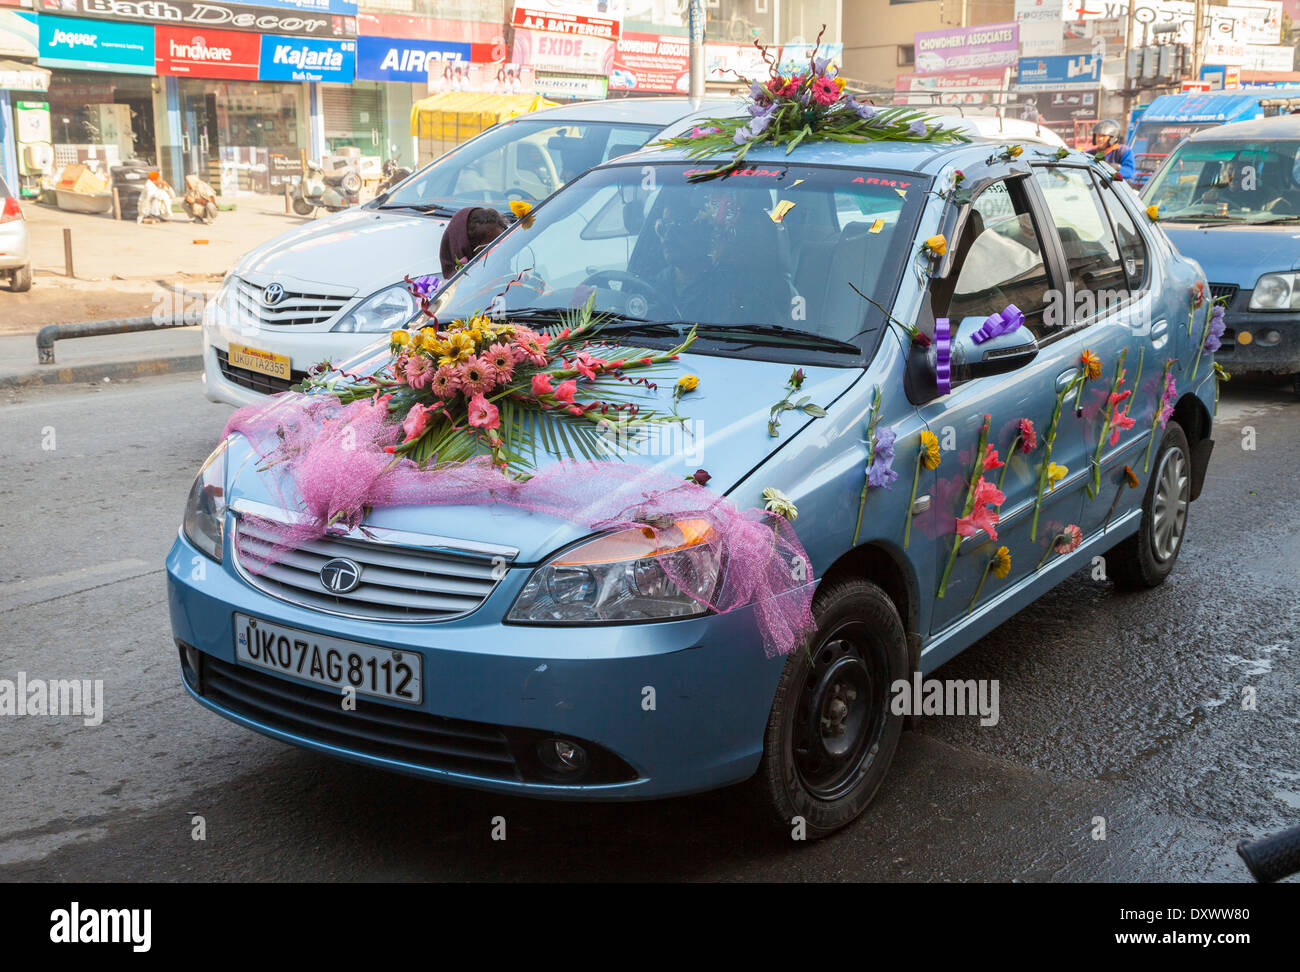 Decorated Car Flowers Indian Wedding Stock Photos Decorated Car